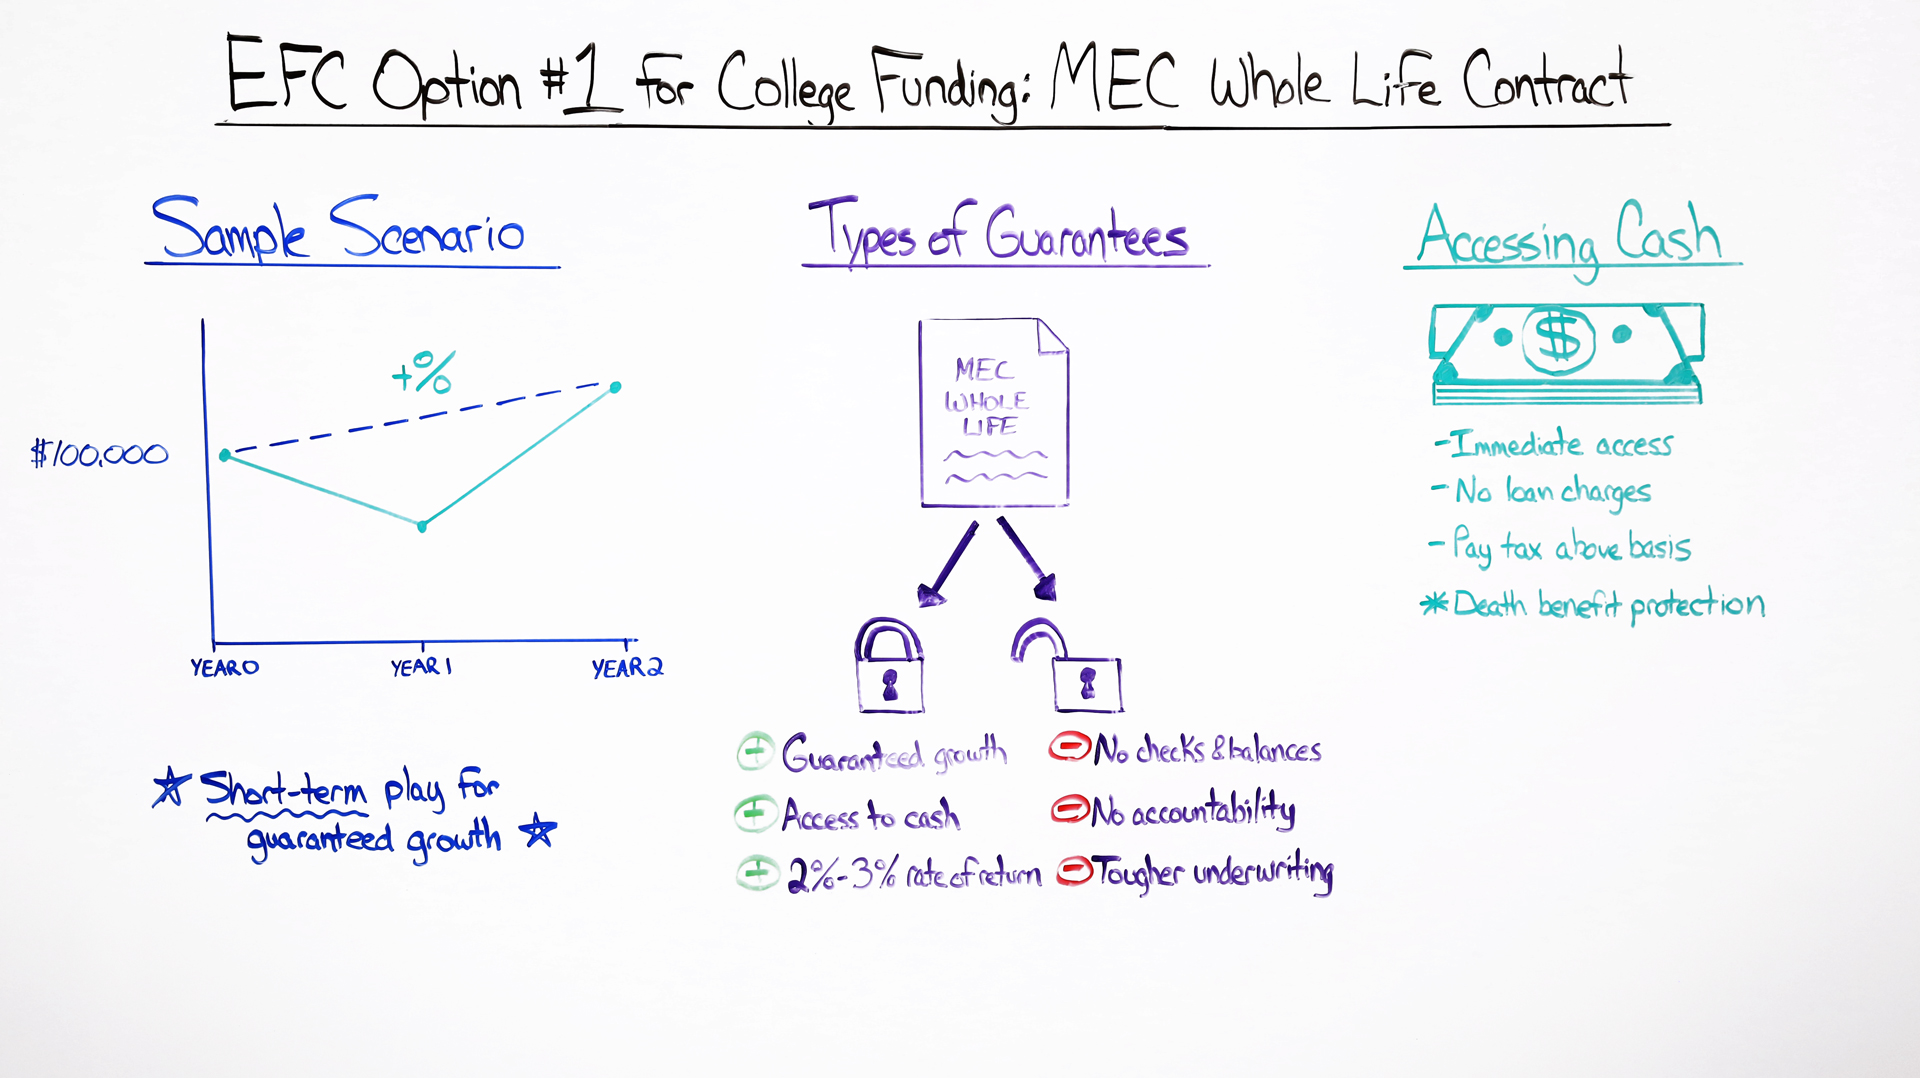 EFC Option 1 for College Funding MEC Whole Life Contract